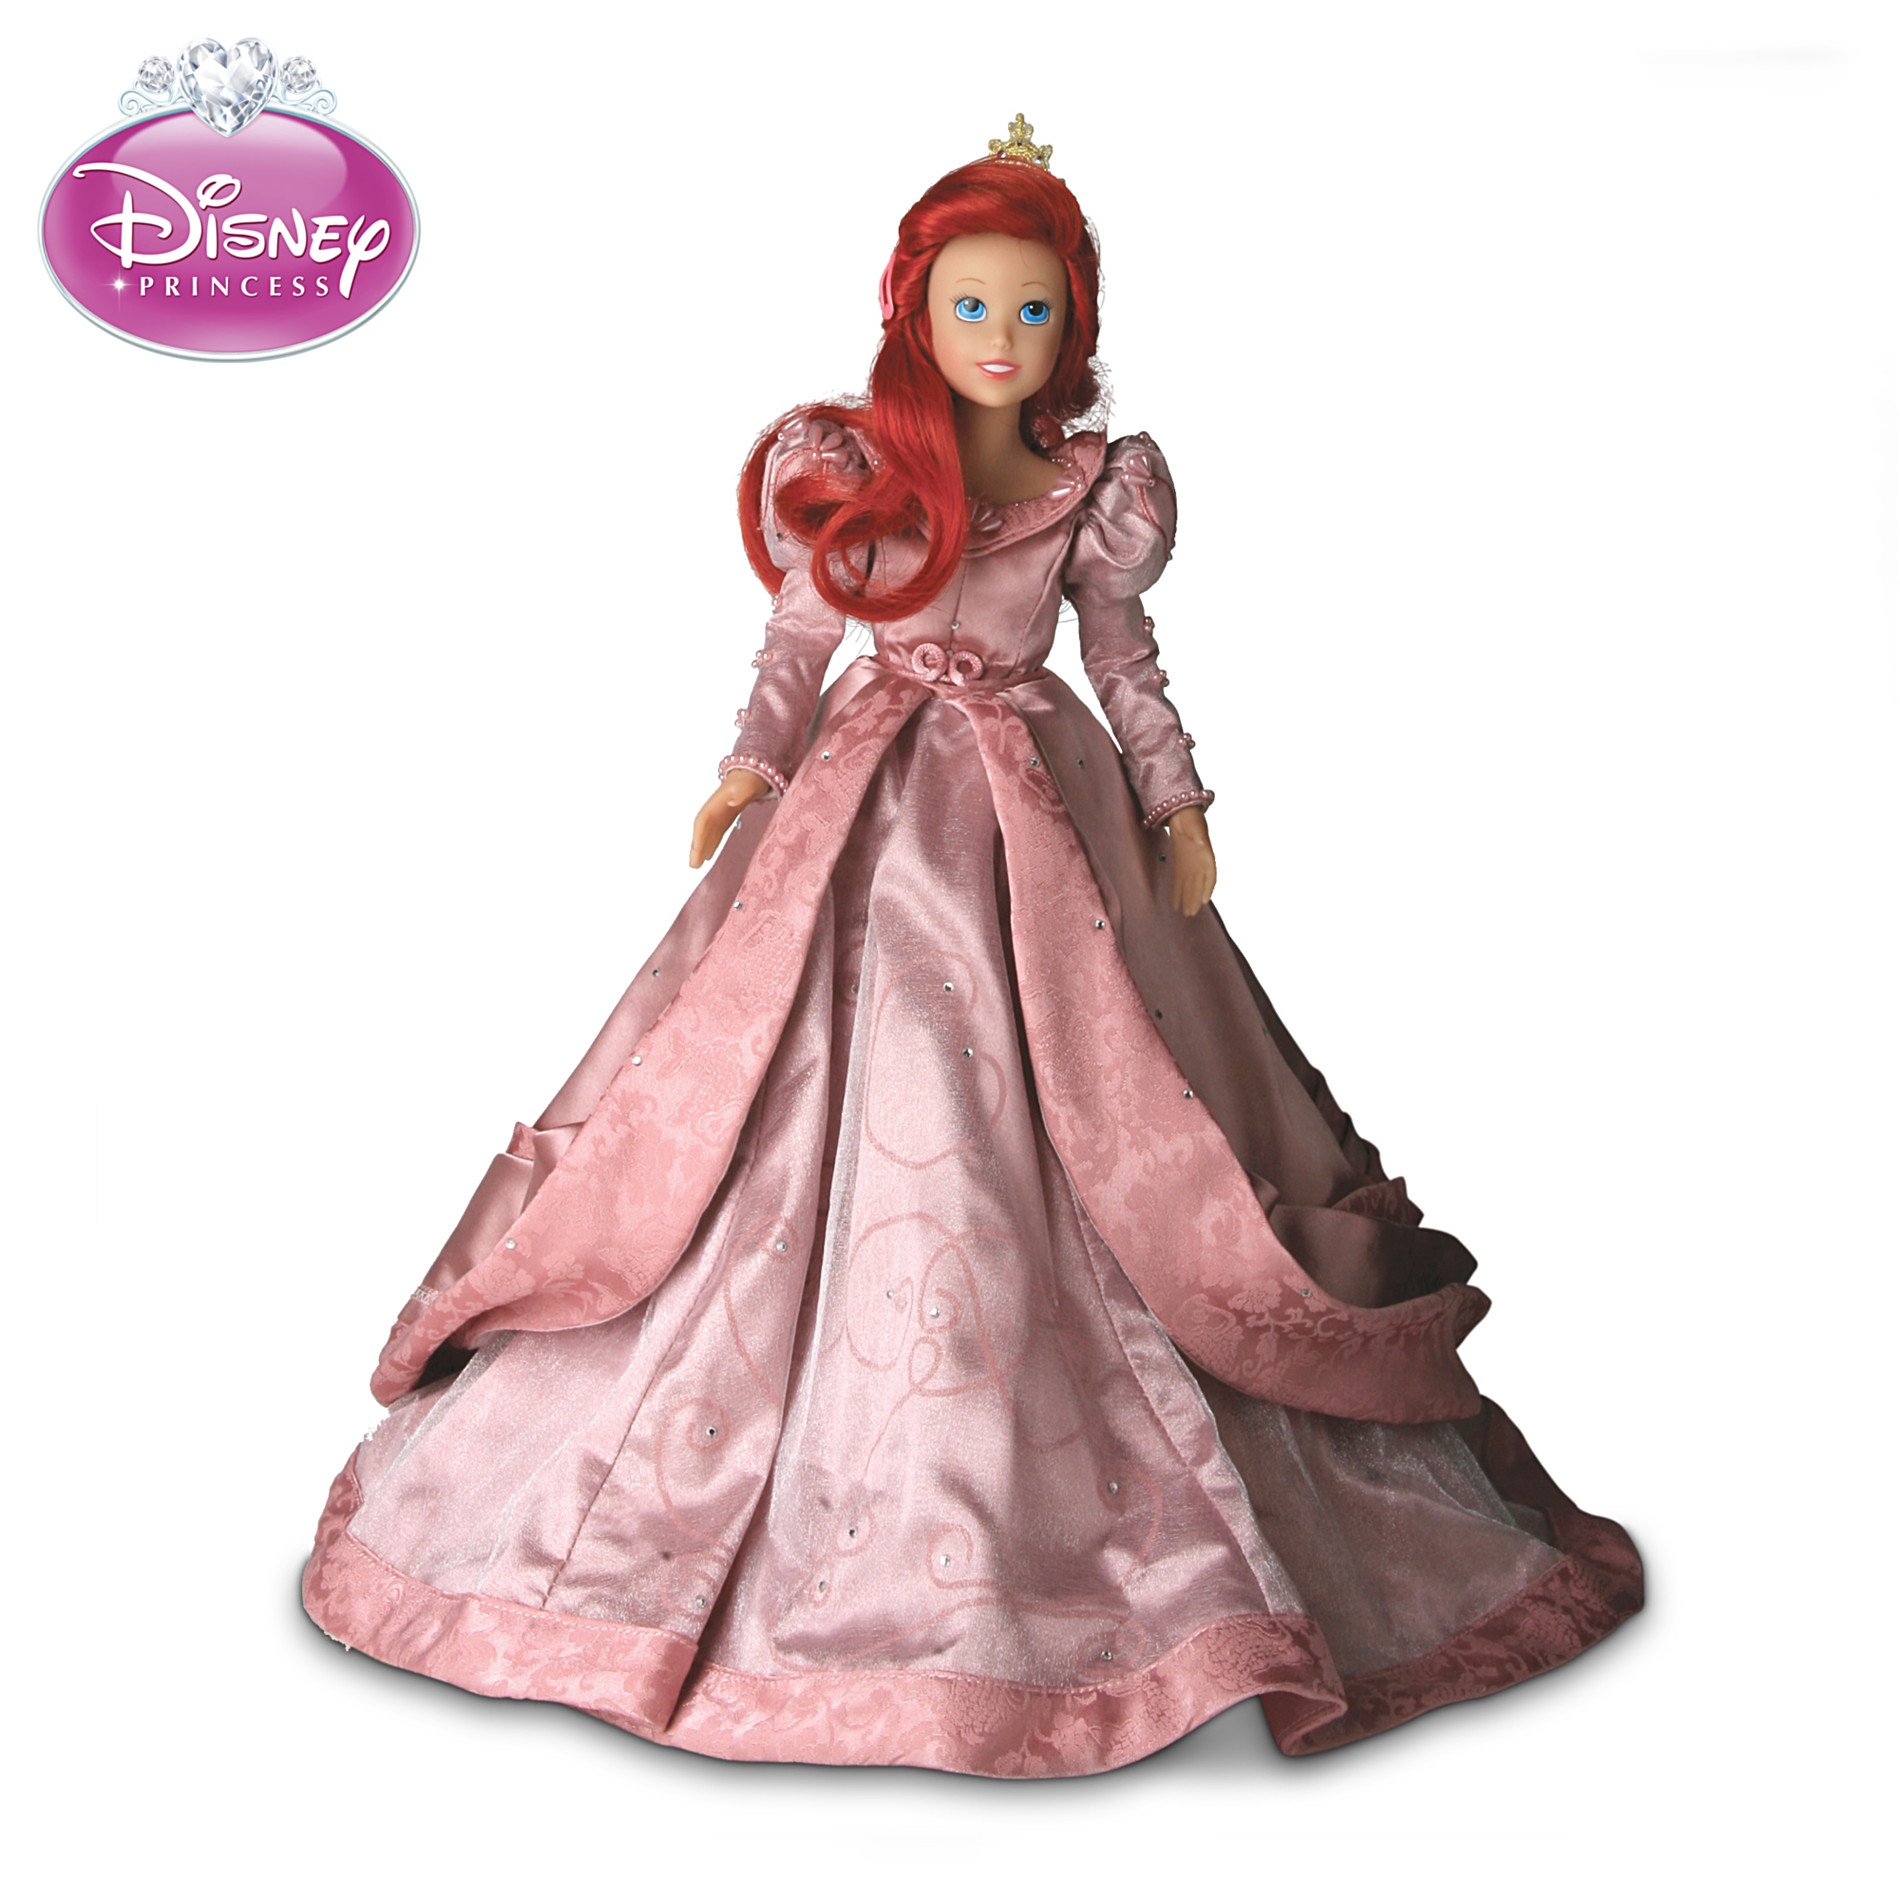 The Ashton-Drake Galleries Disney's Princess Ariel Ball-Jointed Fashion Doll at Sears.com